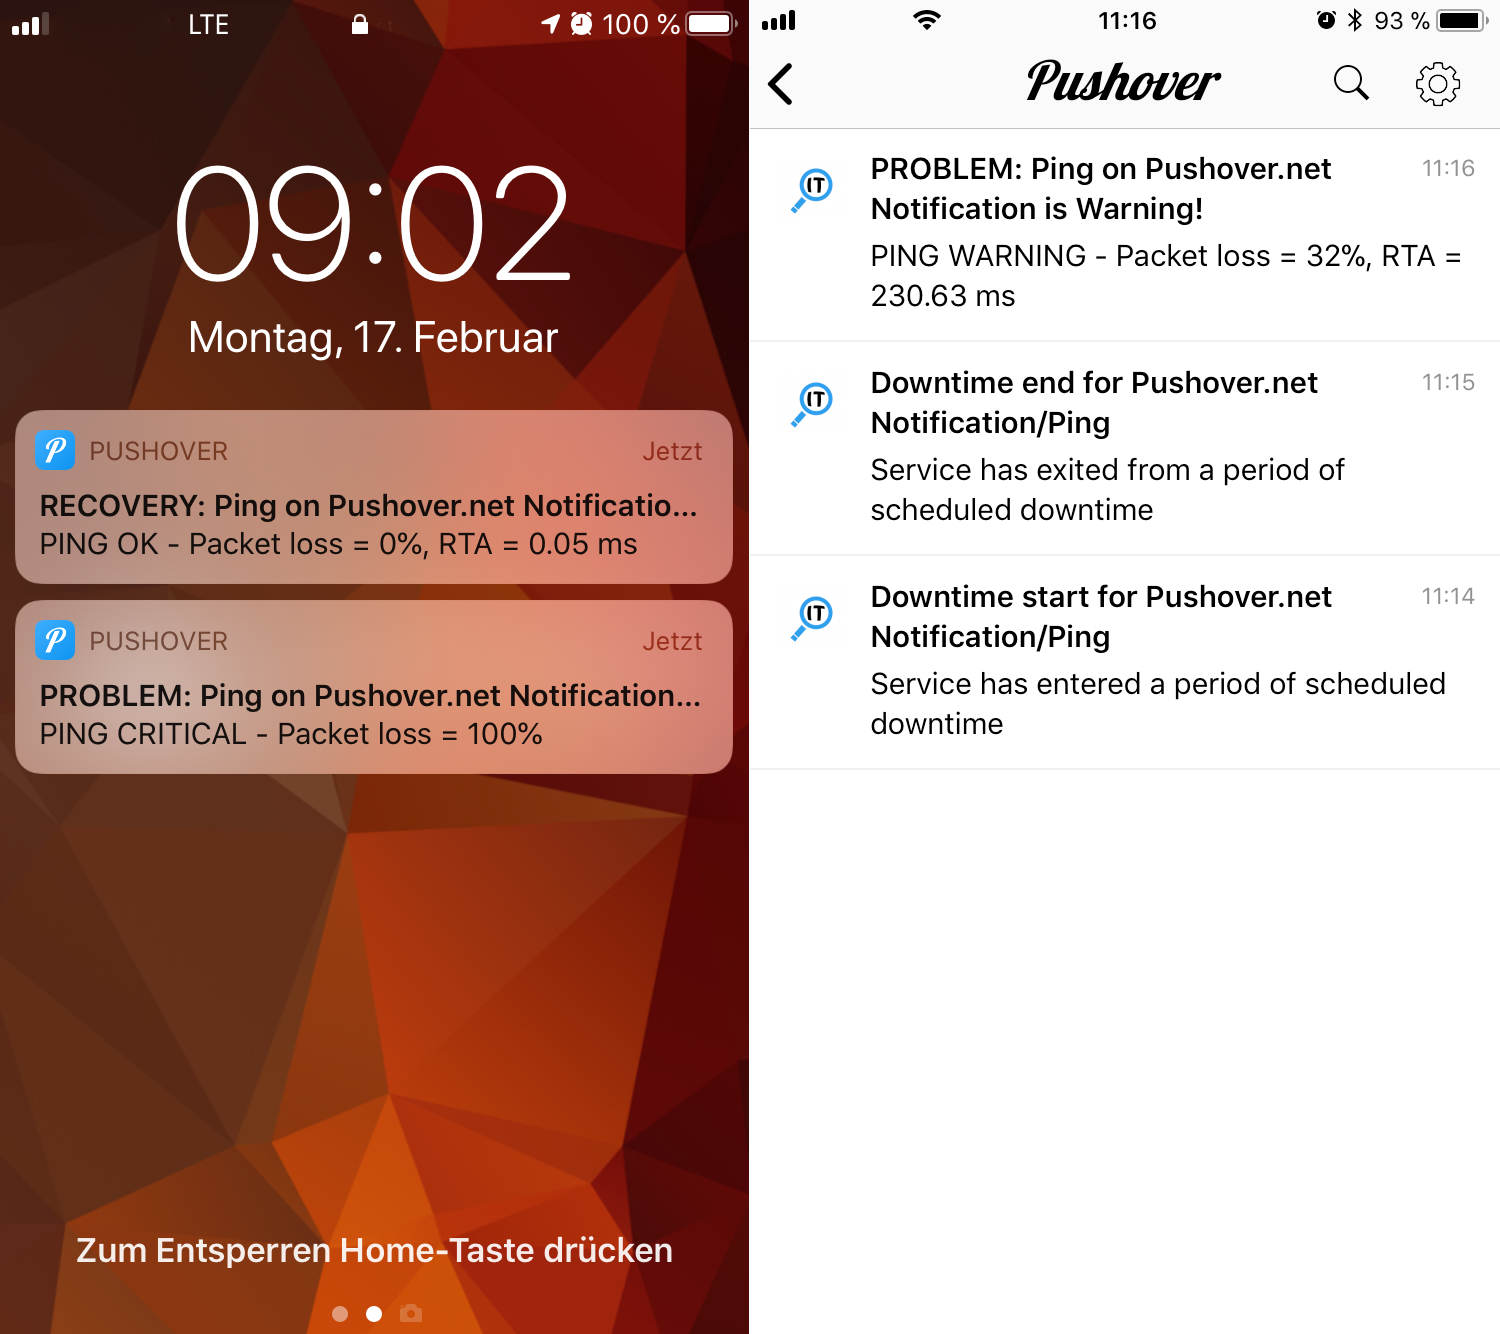 openITCOCKPIT notifications through Pushover on iOS or Android